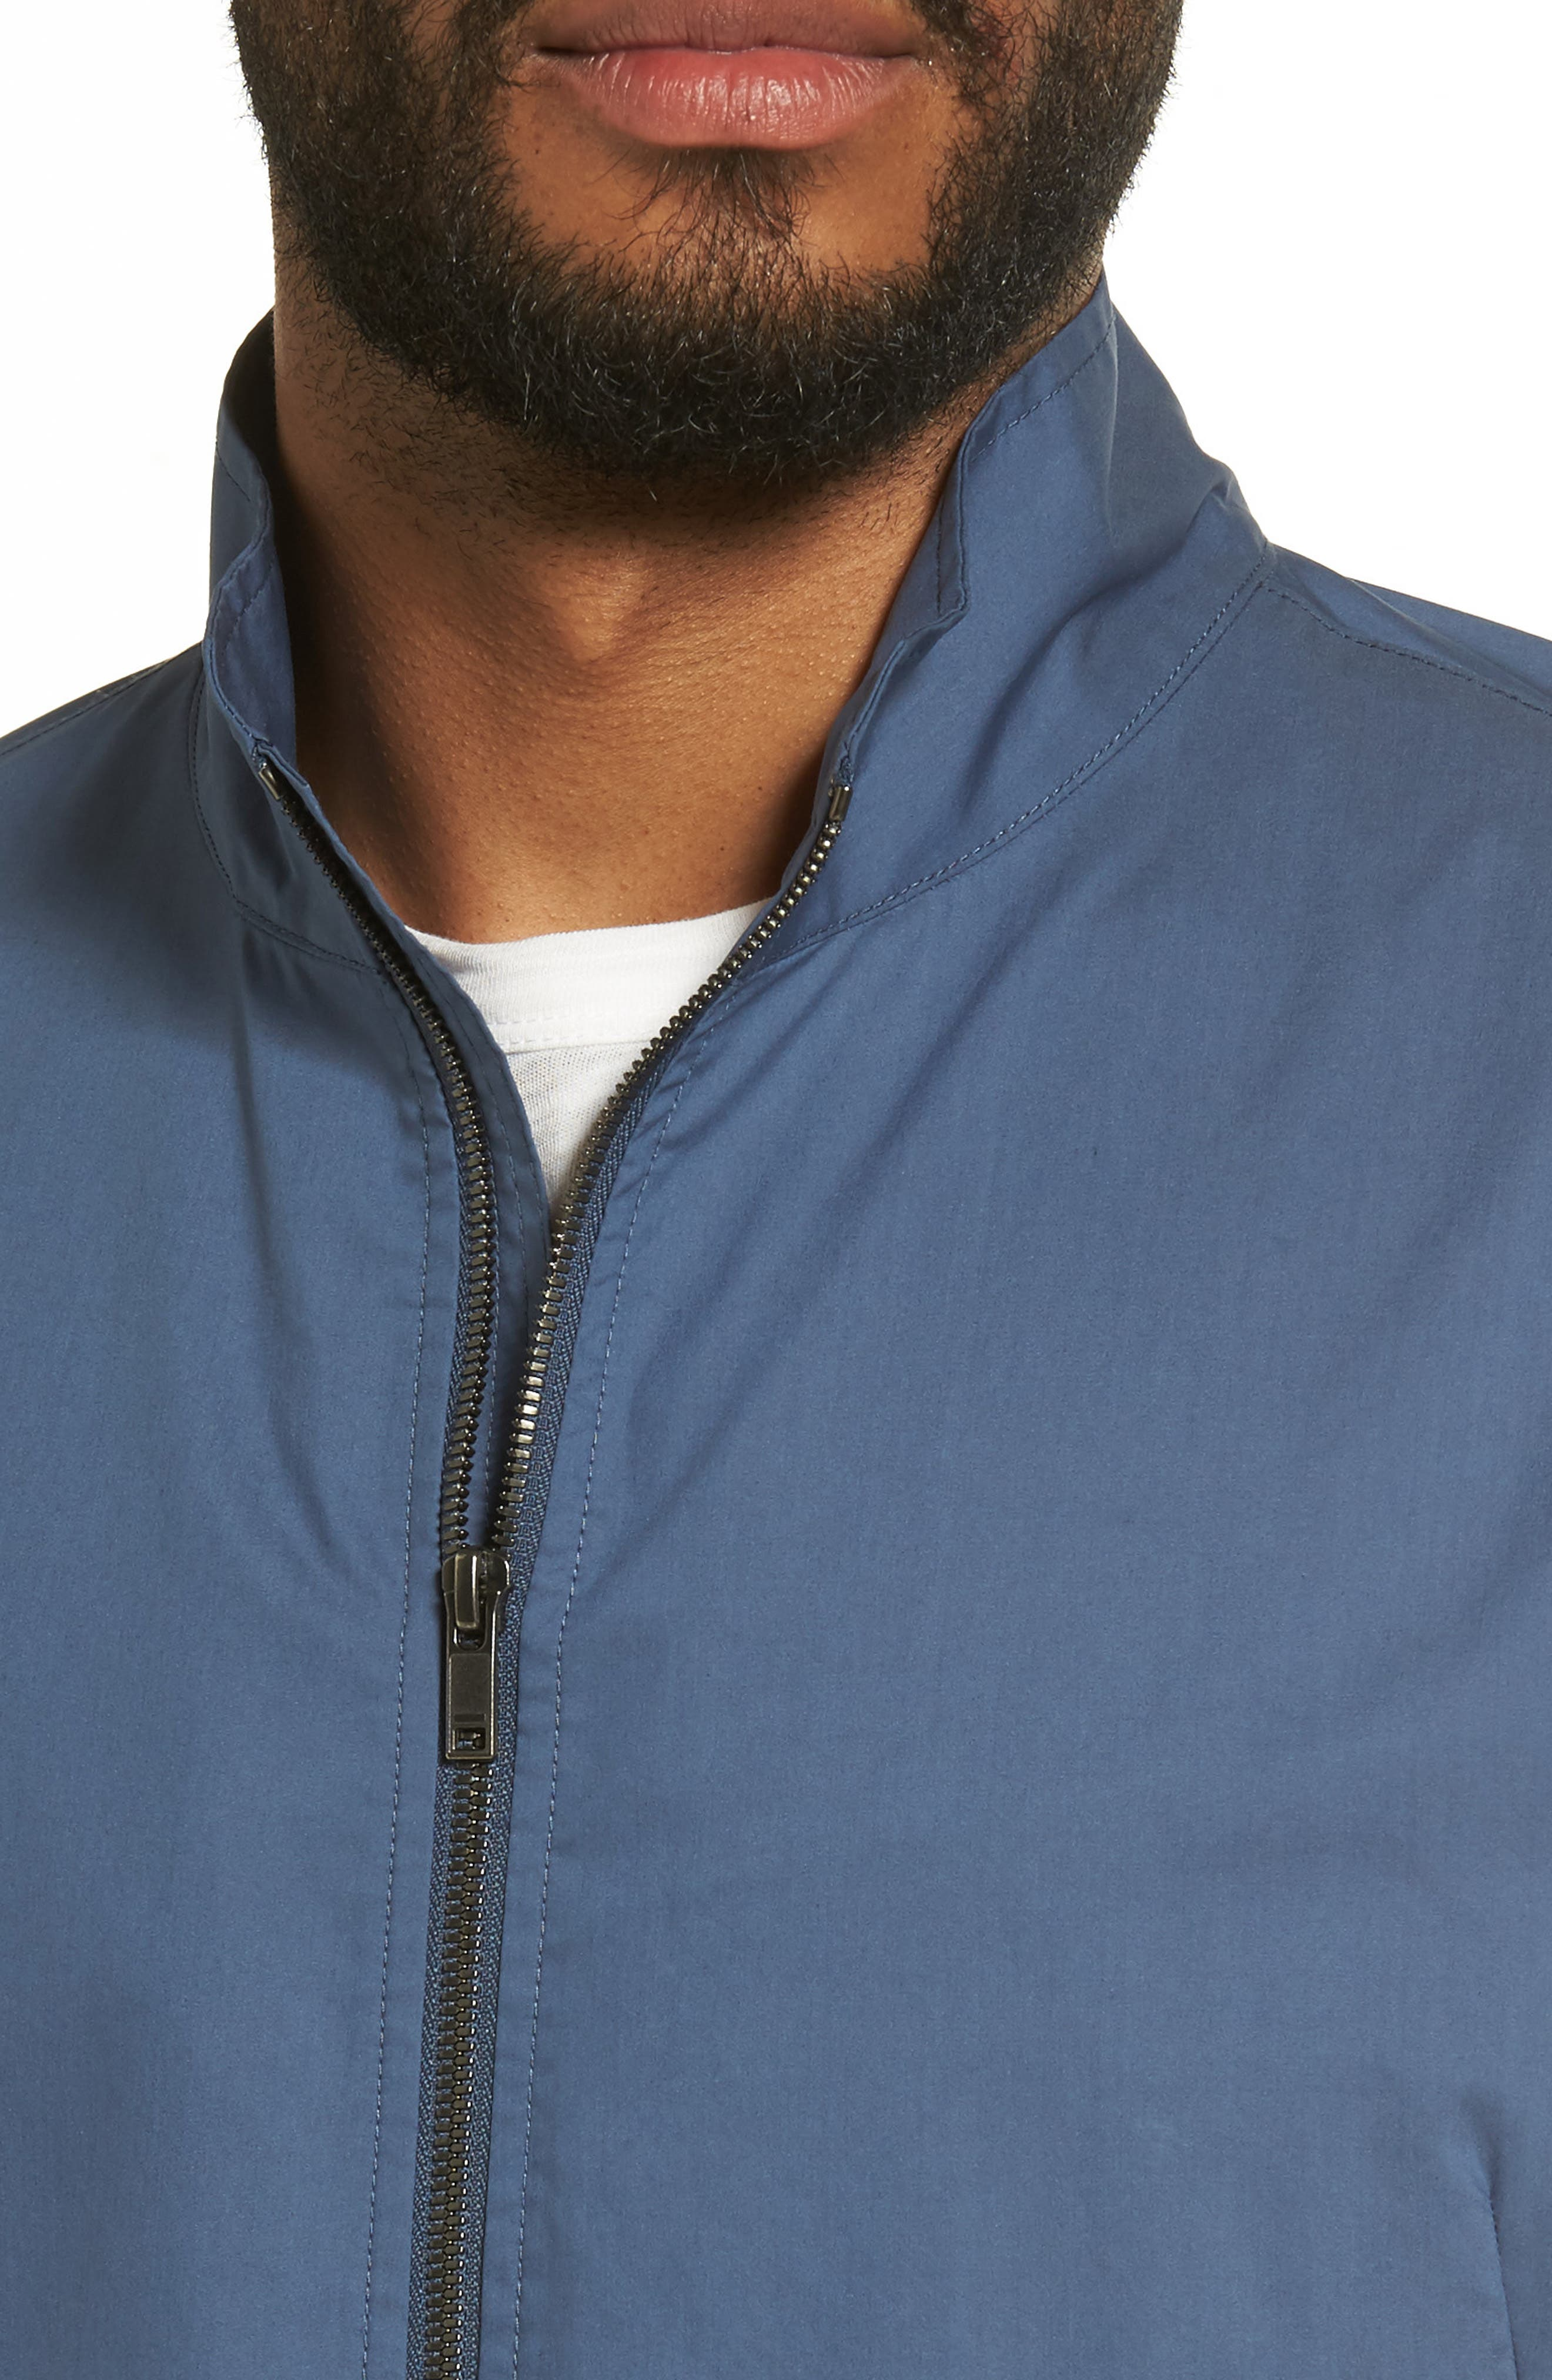 Draftbreak Tech Jacket,                             Alternate thumbnail 4, color,                             400